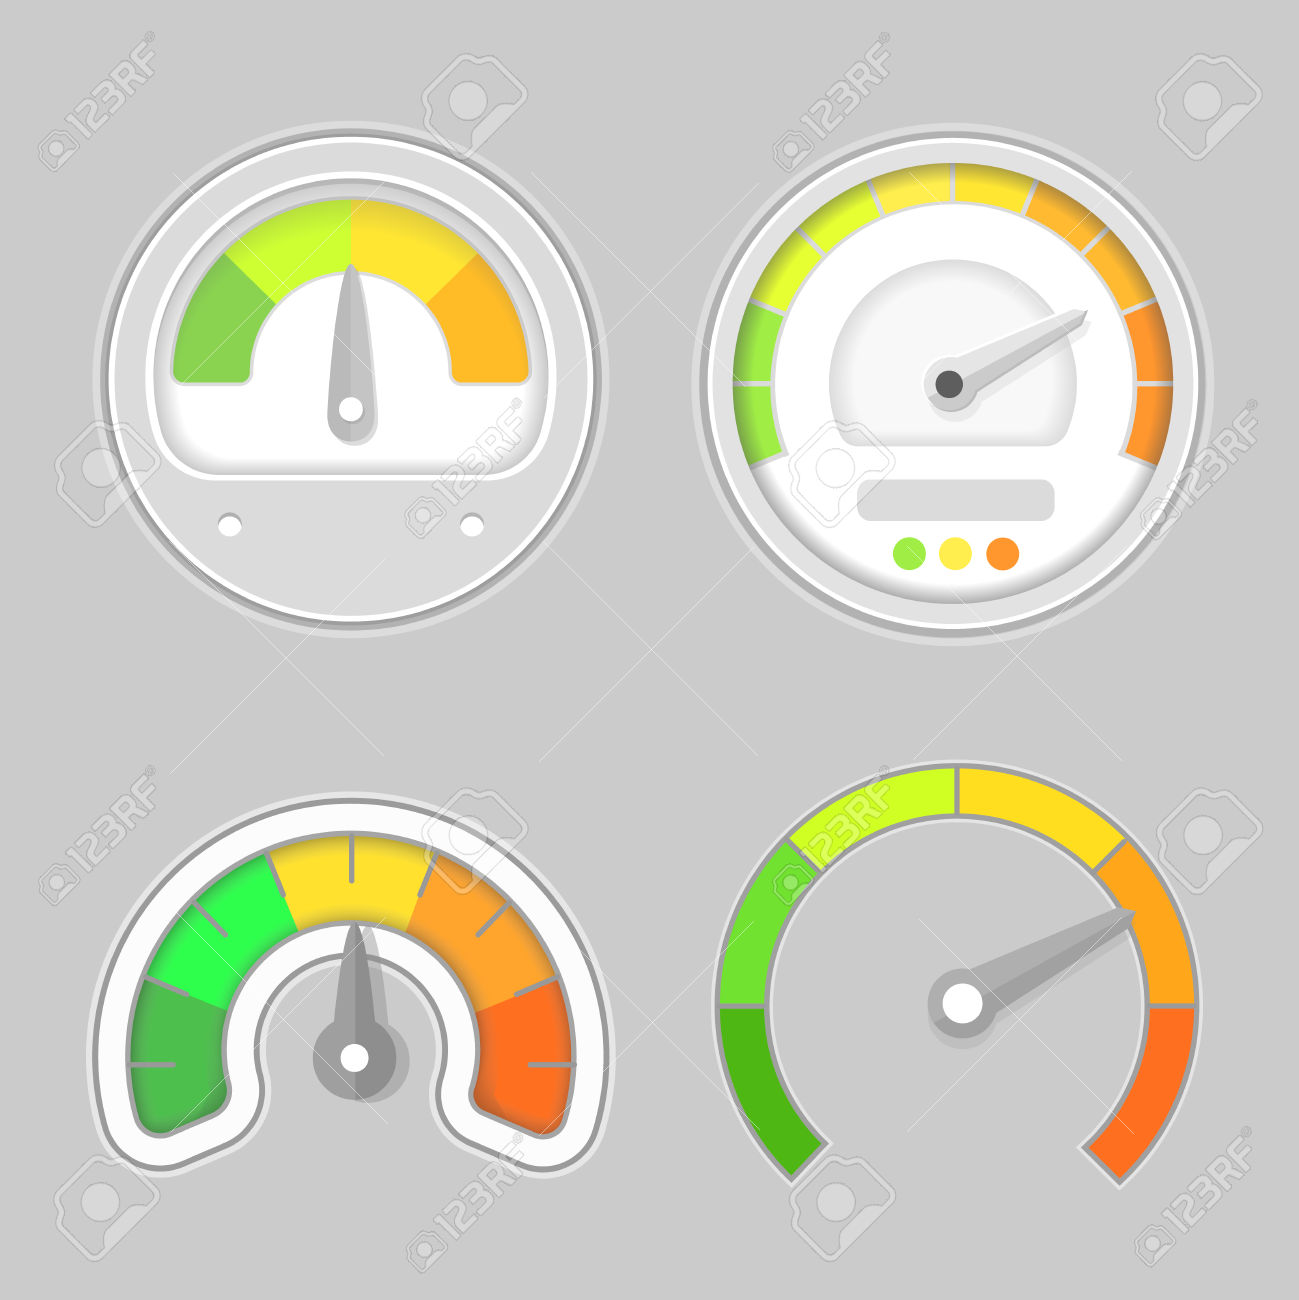 Clipart speed arrow clip freeuse download Gauge Meter Element. Speed Meter Icon Or Sign With Arrow ... clip freeuse download